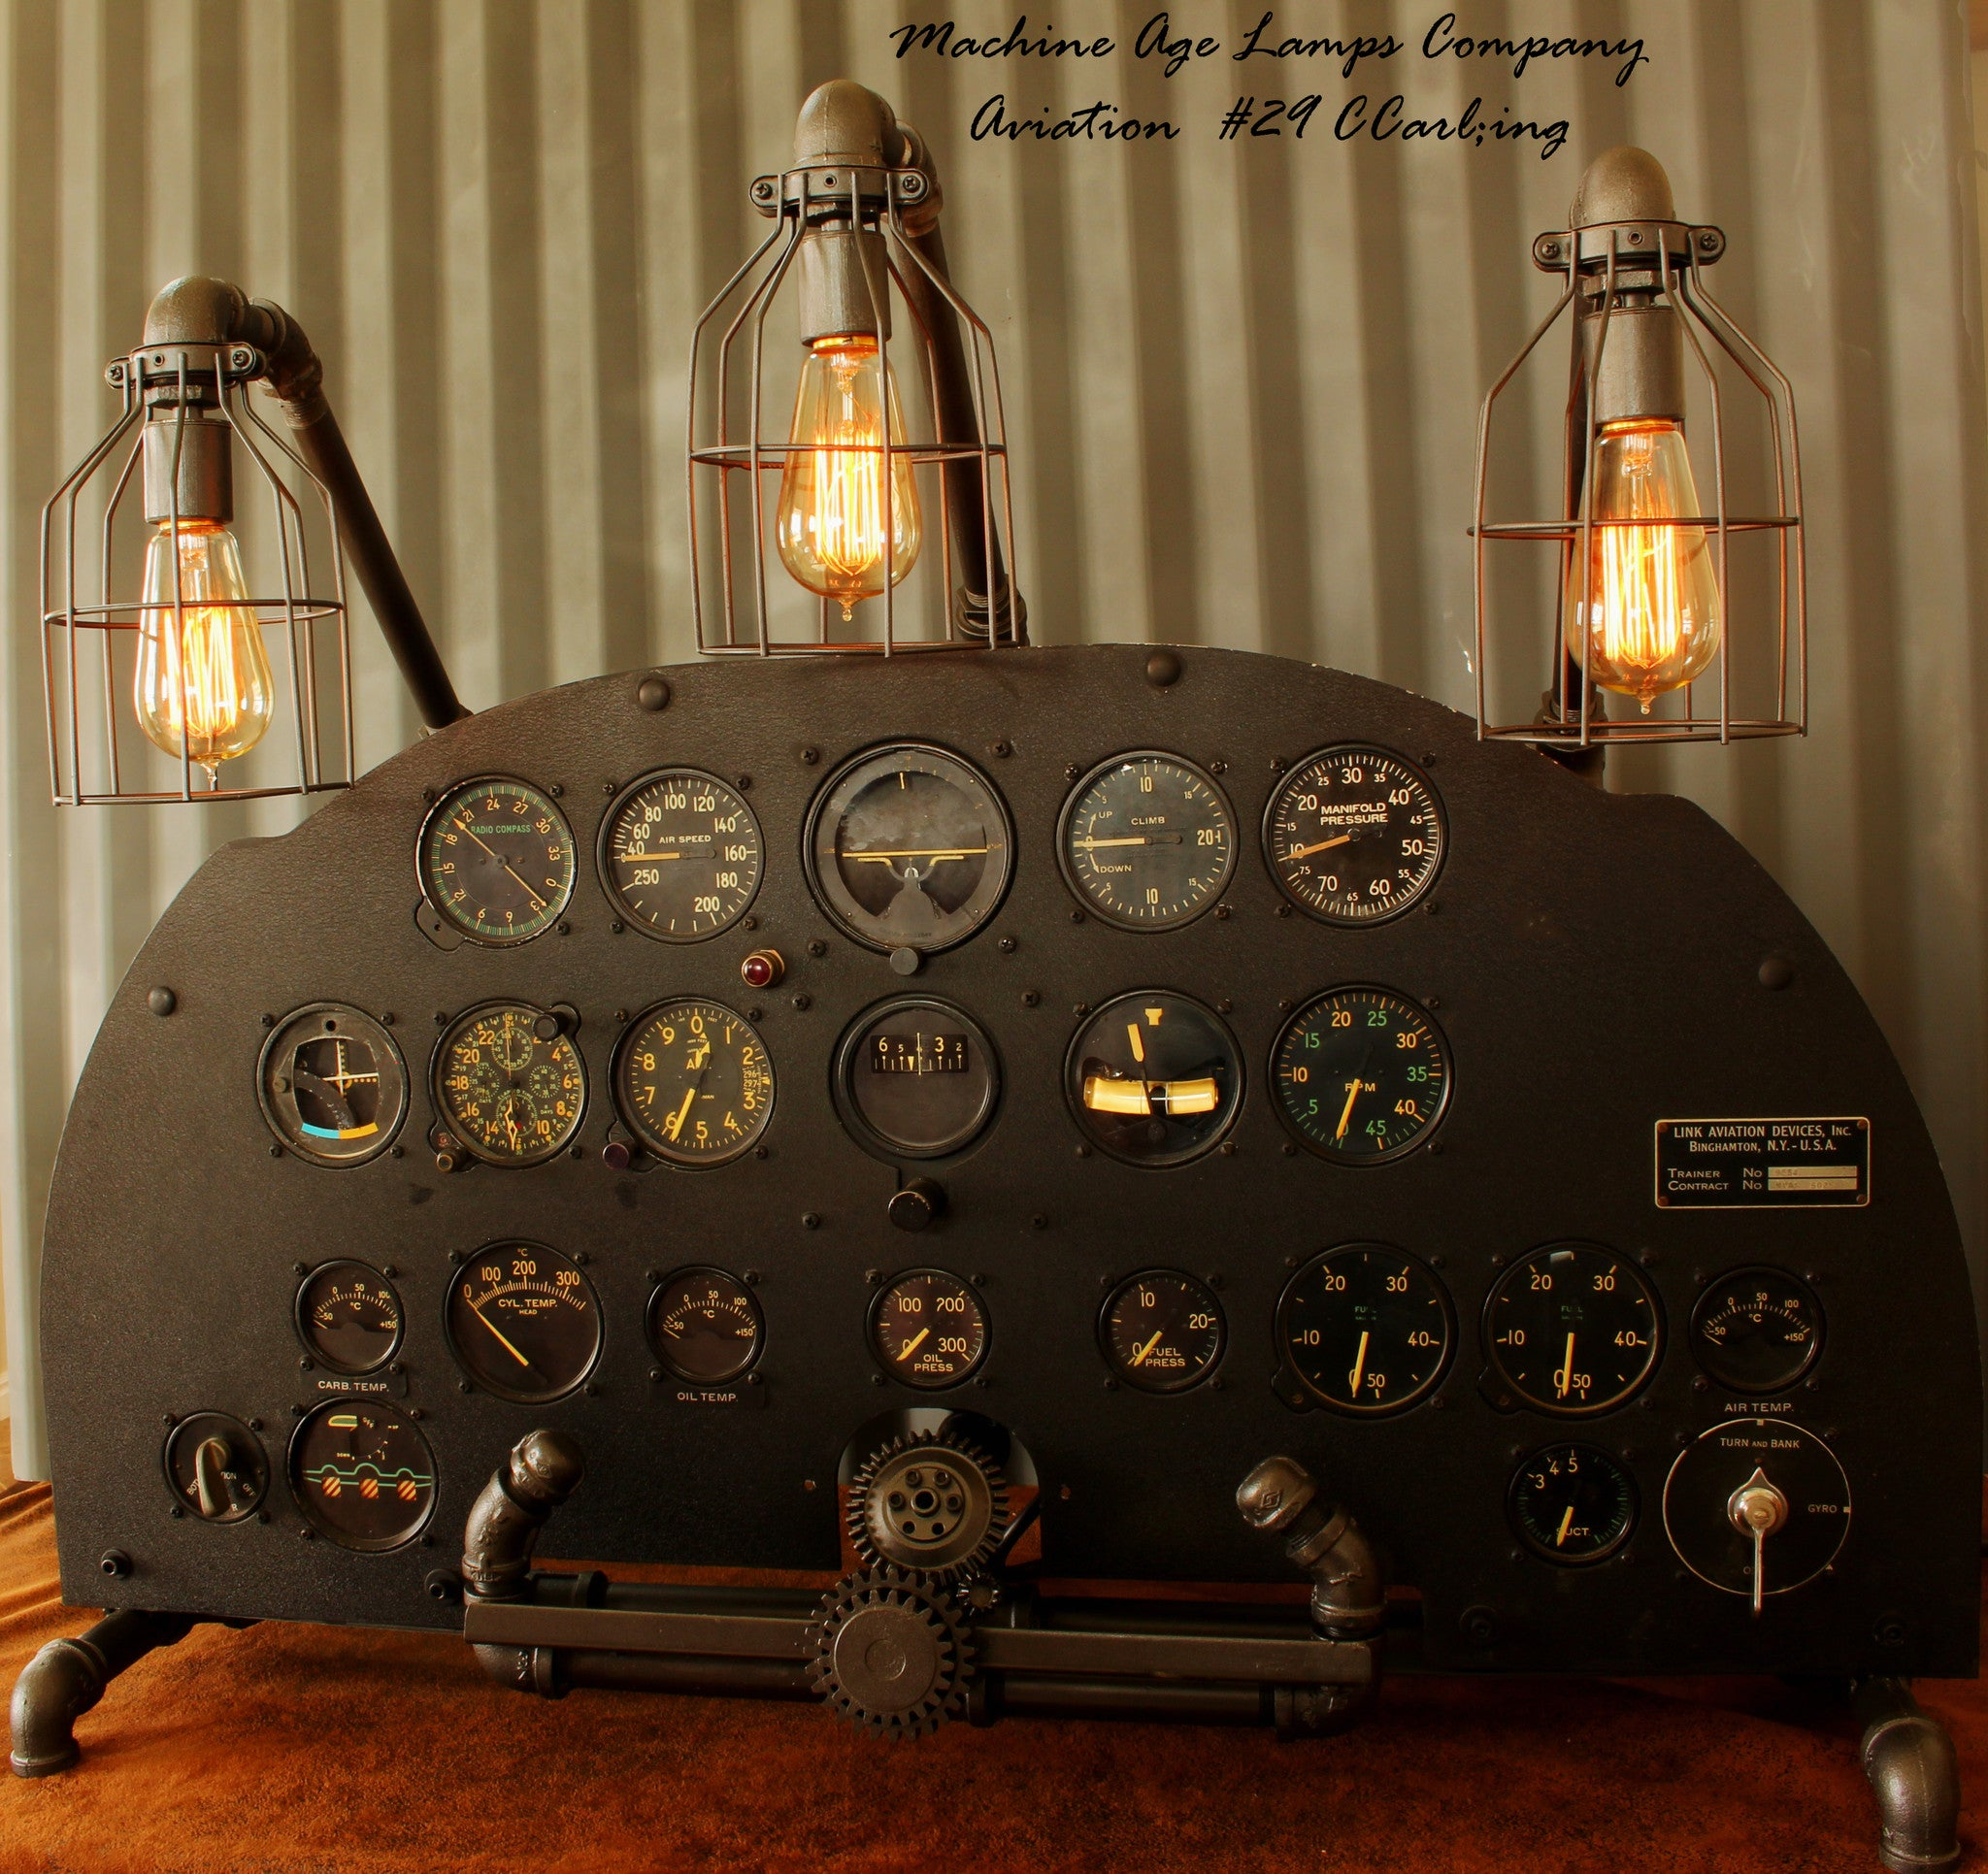 WWII Link Trainer Aviation Instrument Control Panel Lamp CC #29 - SOLD